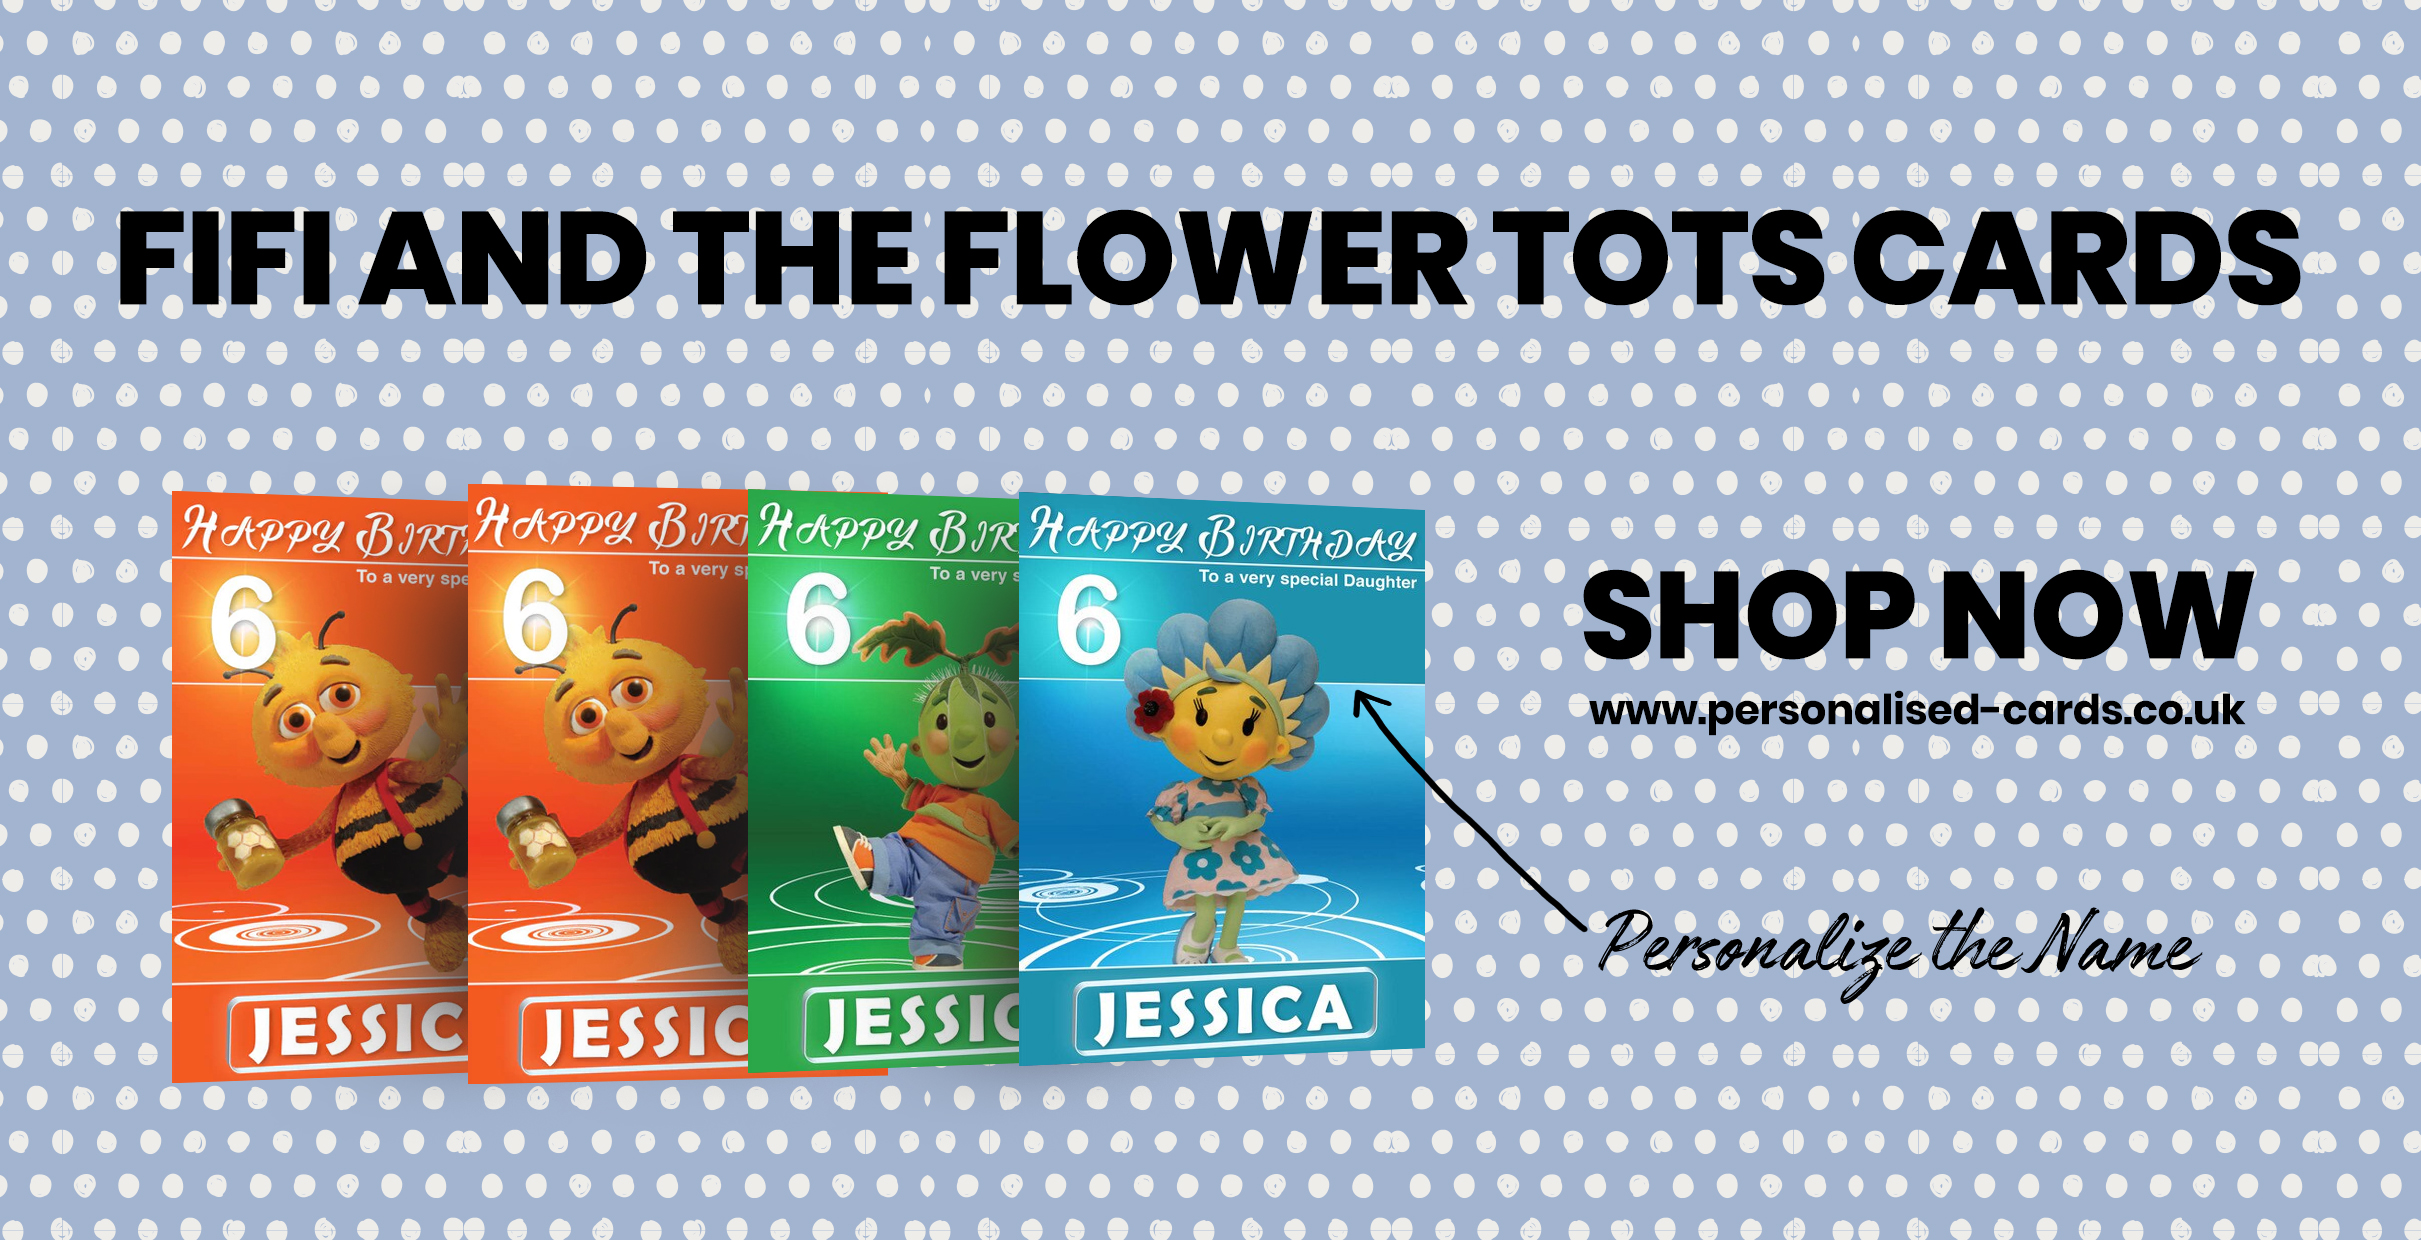 fifi-and-the-flower-tots-cards.jpg